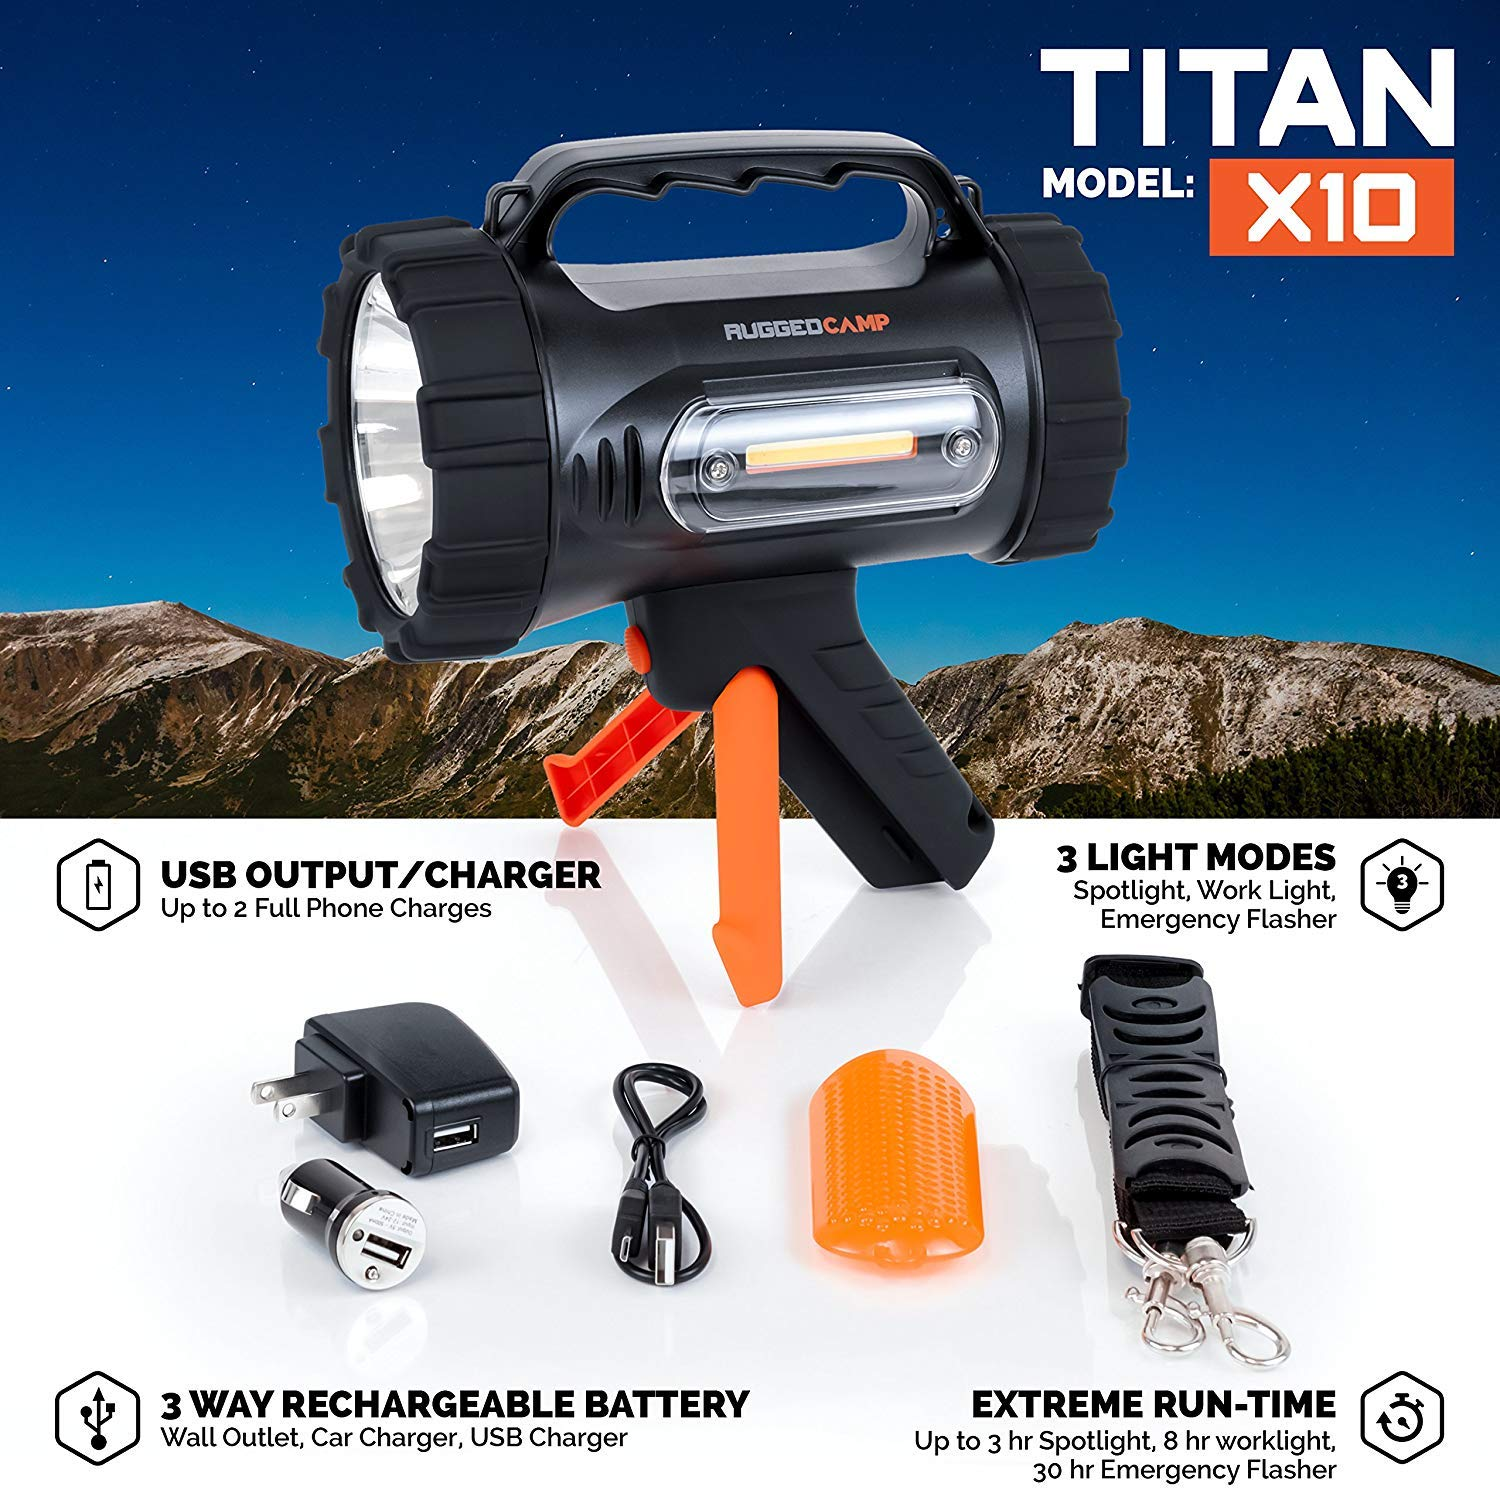 Rugged Camp Titan X10 Rechargeable Spotlight - 1000 Lumens - High Powered 10W LED Bright Flashlight - Work Light & Tripod - Perfect for Camping, Hiking, Hunting, Emergencies & Outdoors (Black/Orange) by Rugged Camp (Image #2)